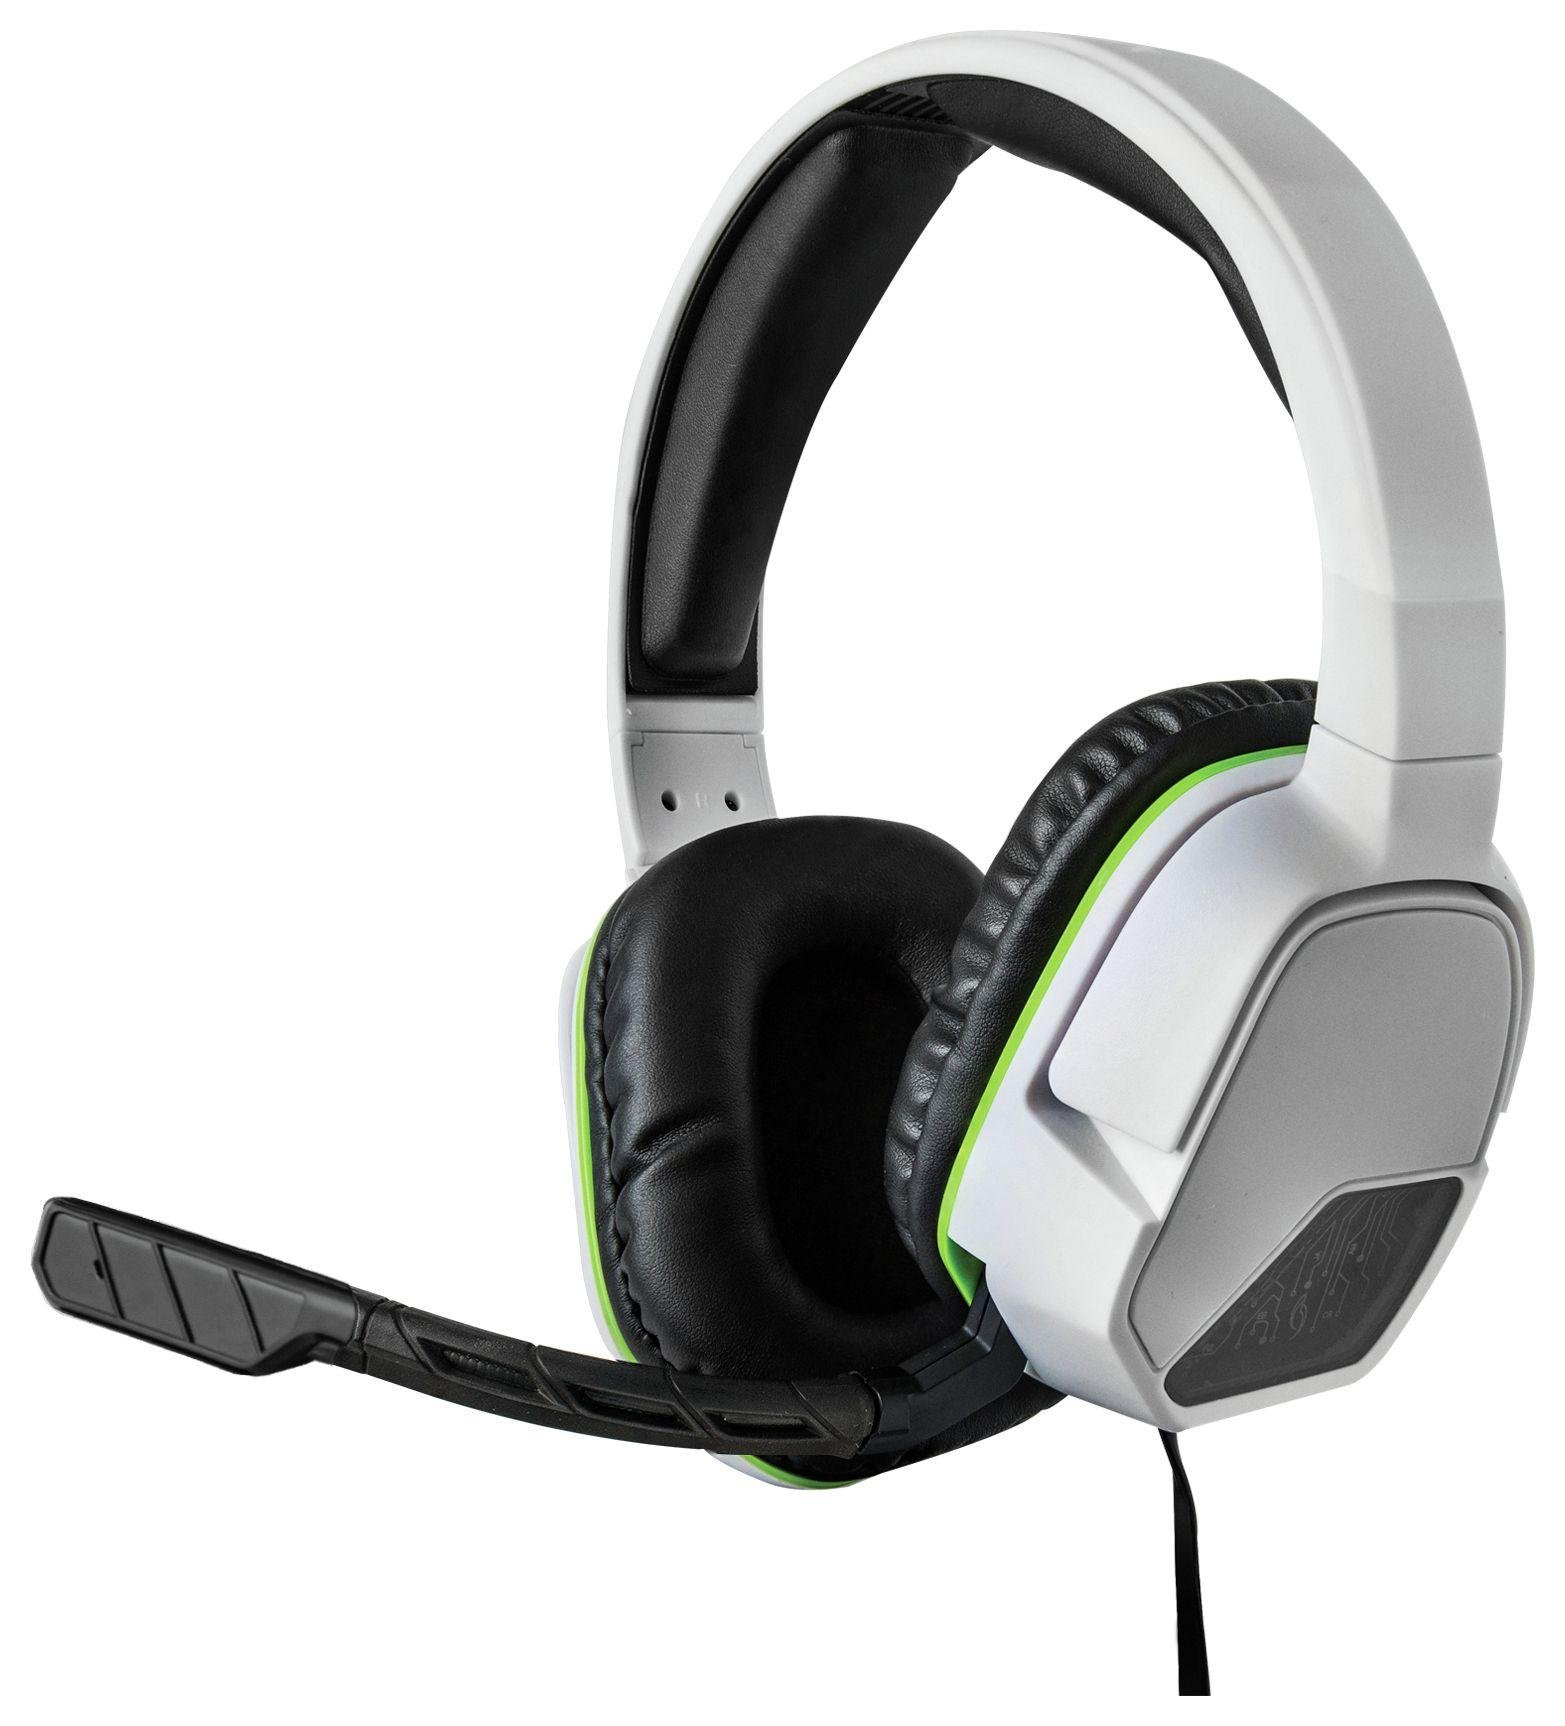 Image of Afterglow LVL 3 Stereo Headset for Xbox One - White